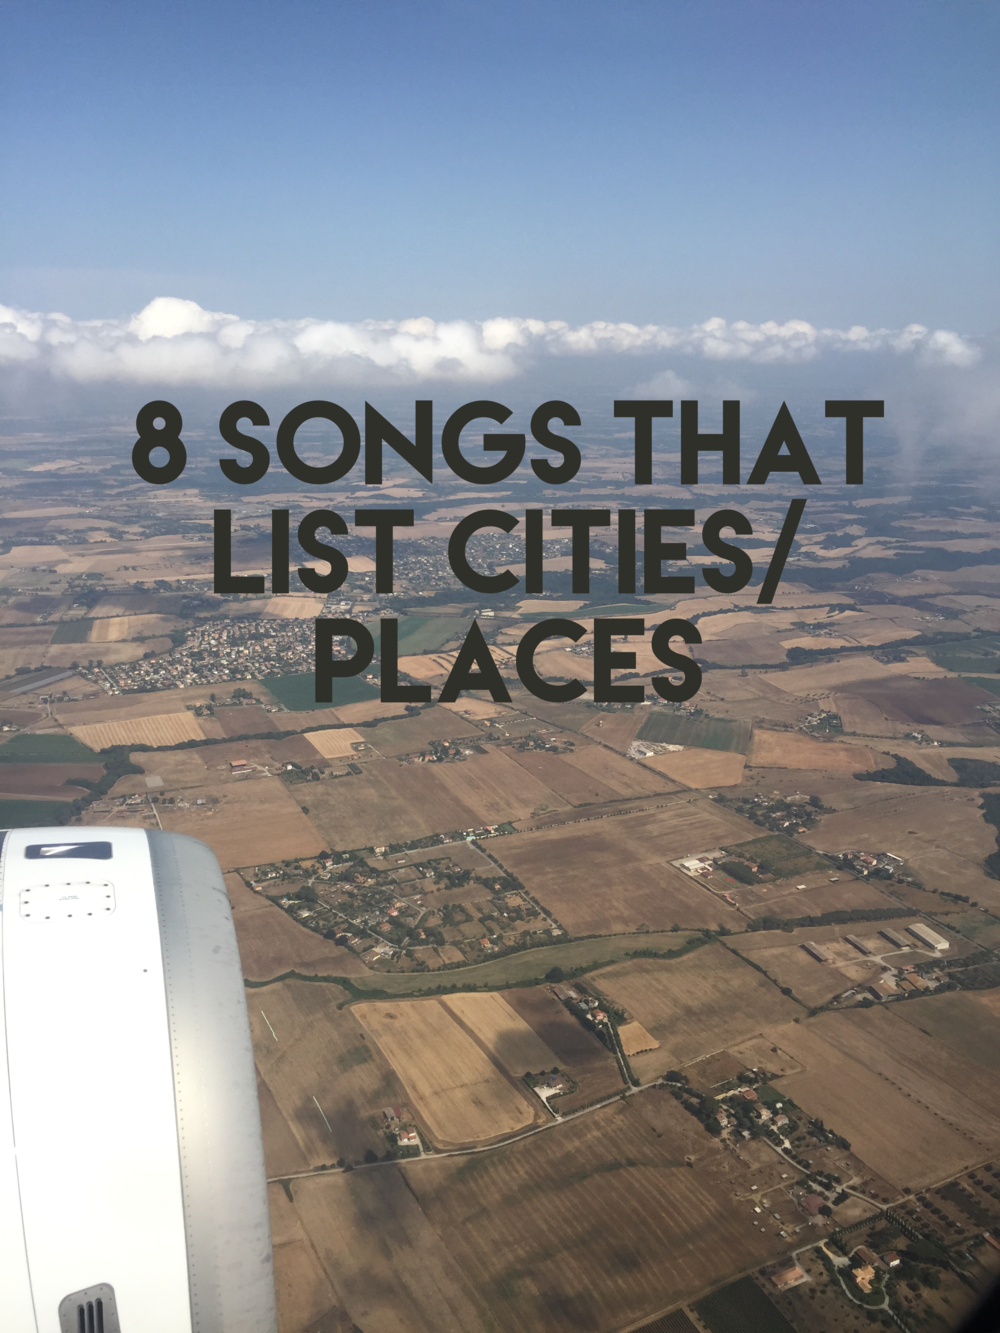 8 Songs That List Cities or Places